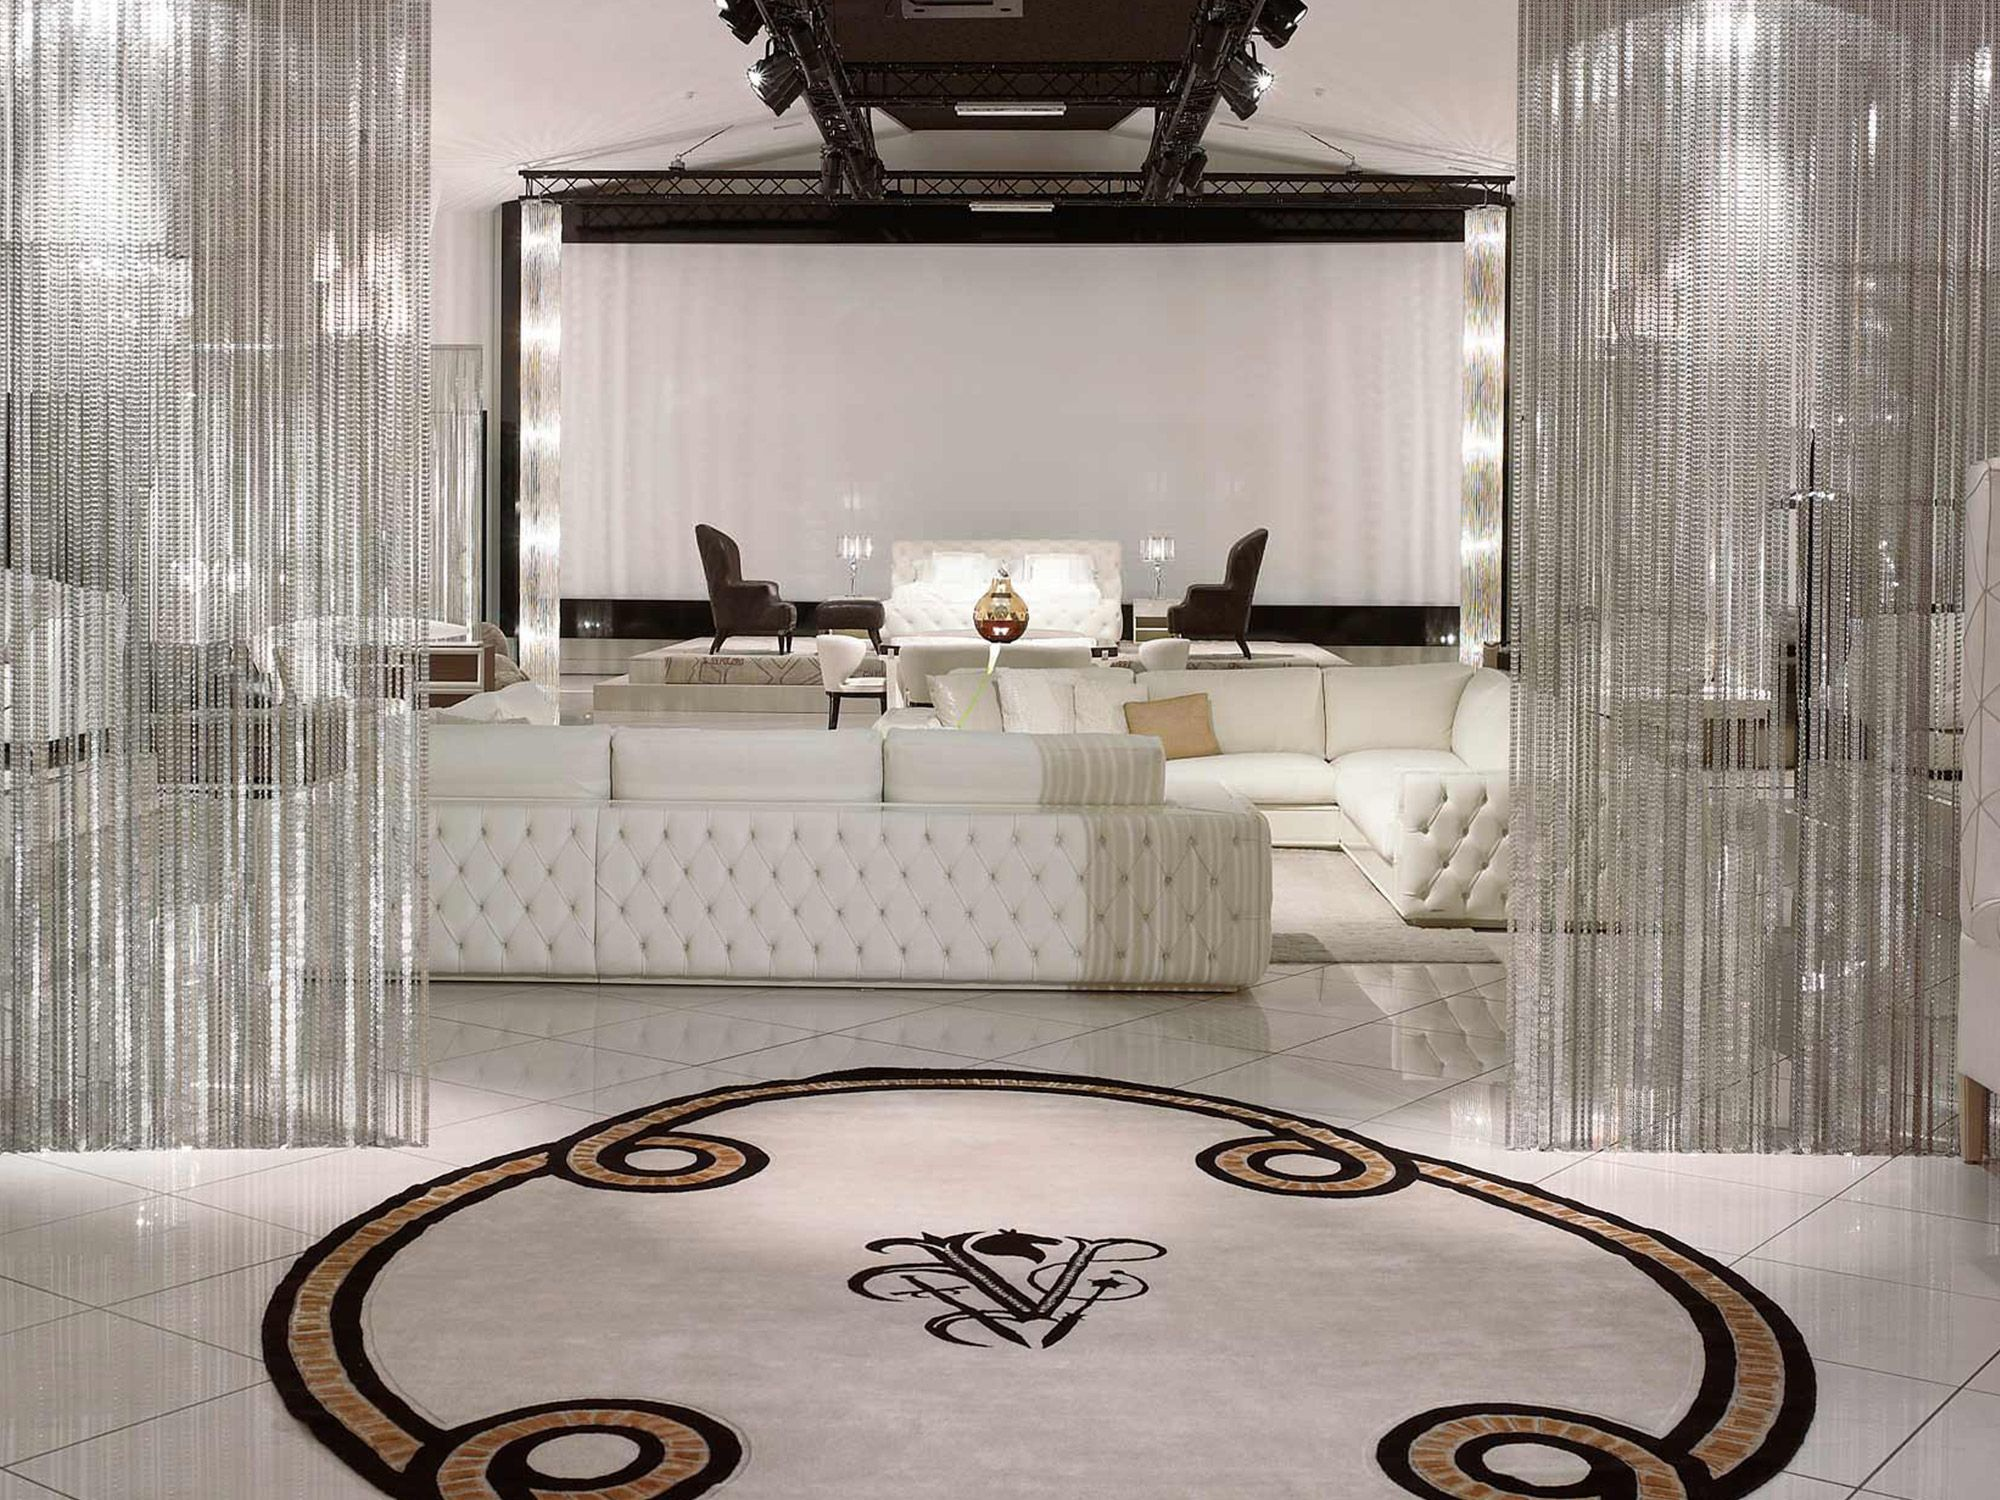 company profile | visionnaire home philosophy | luxury | pinterest ... - Cavallo Arredo Bagno